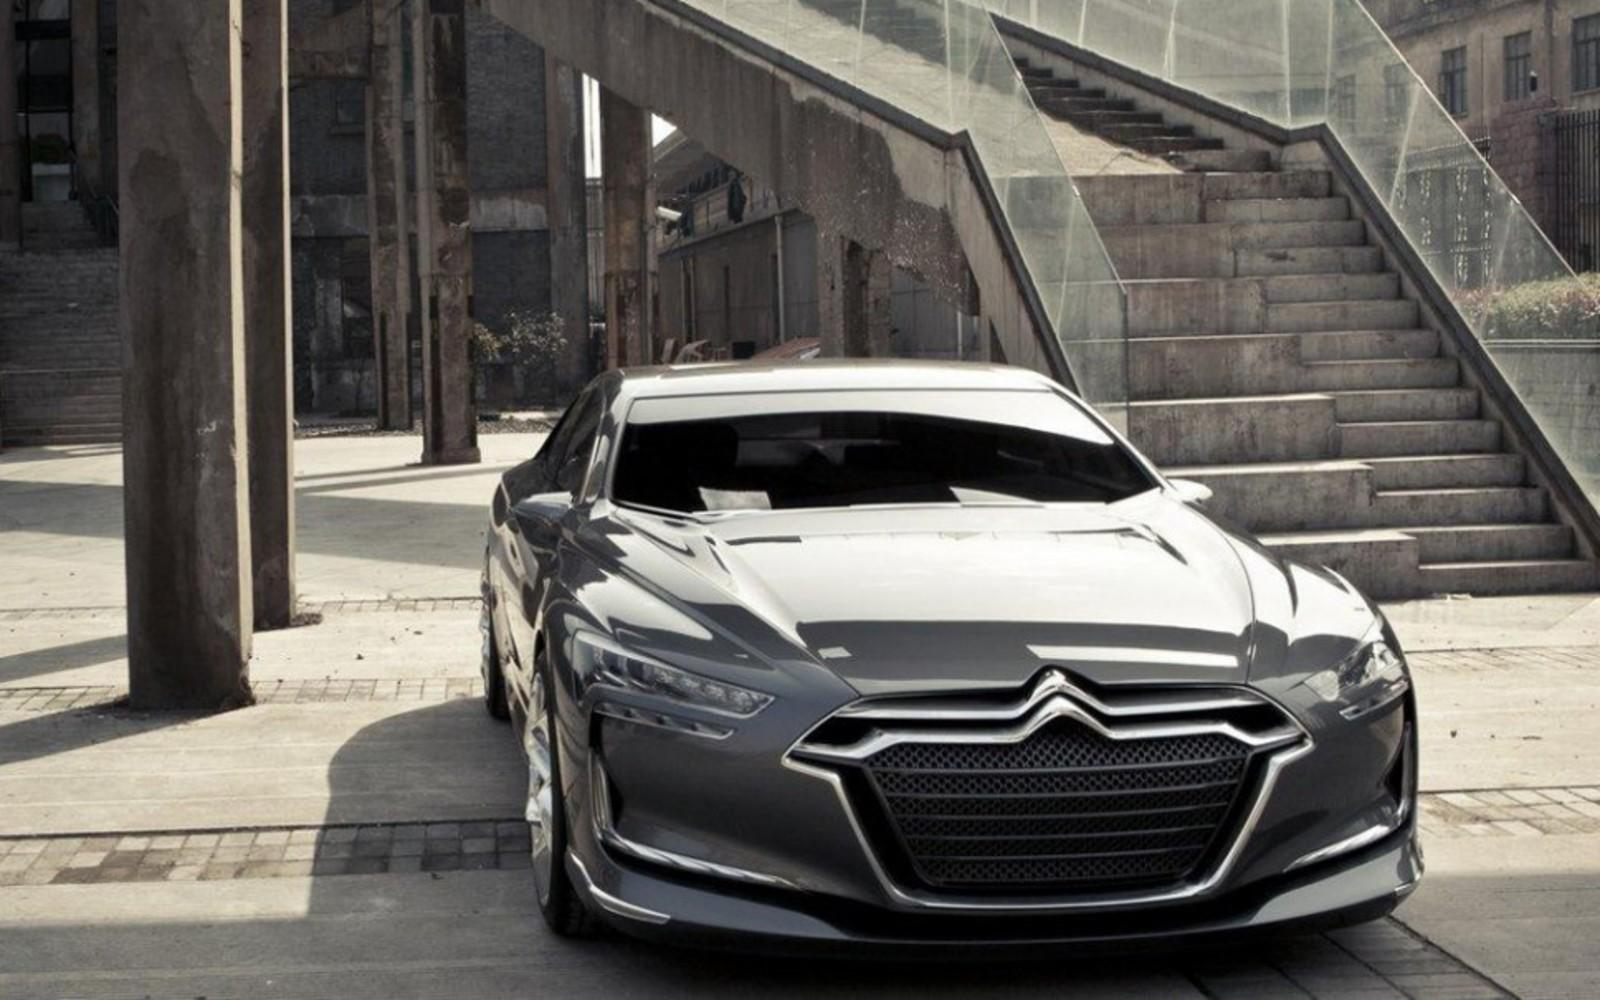 2012 Citroen Ds9 Preview Review Top Speed